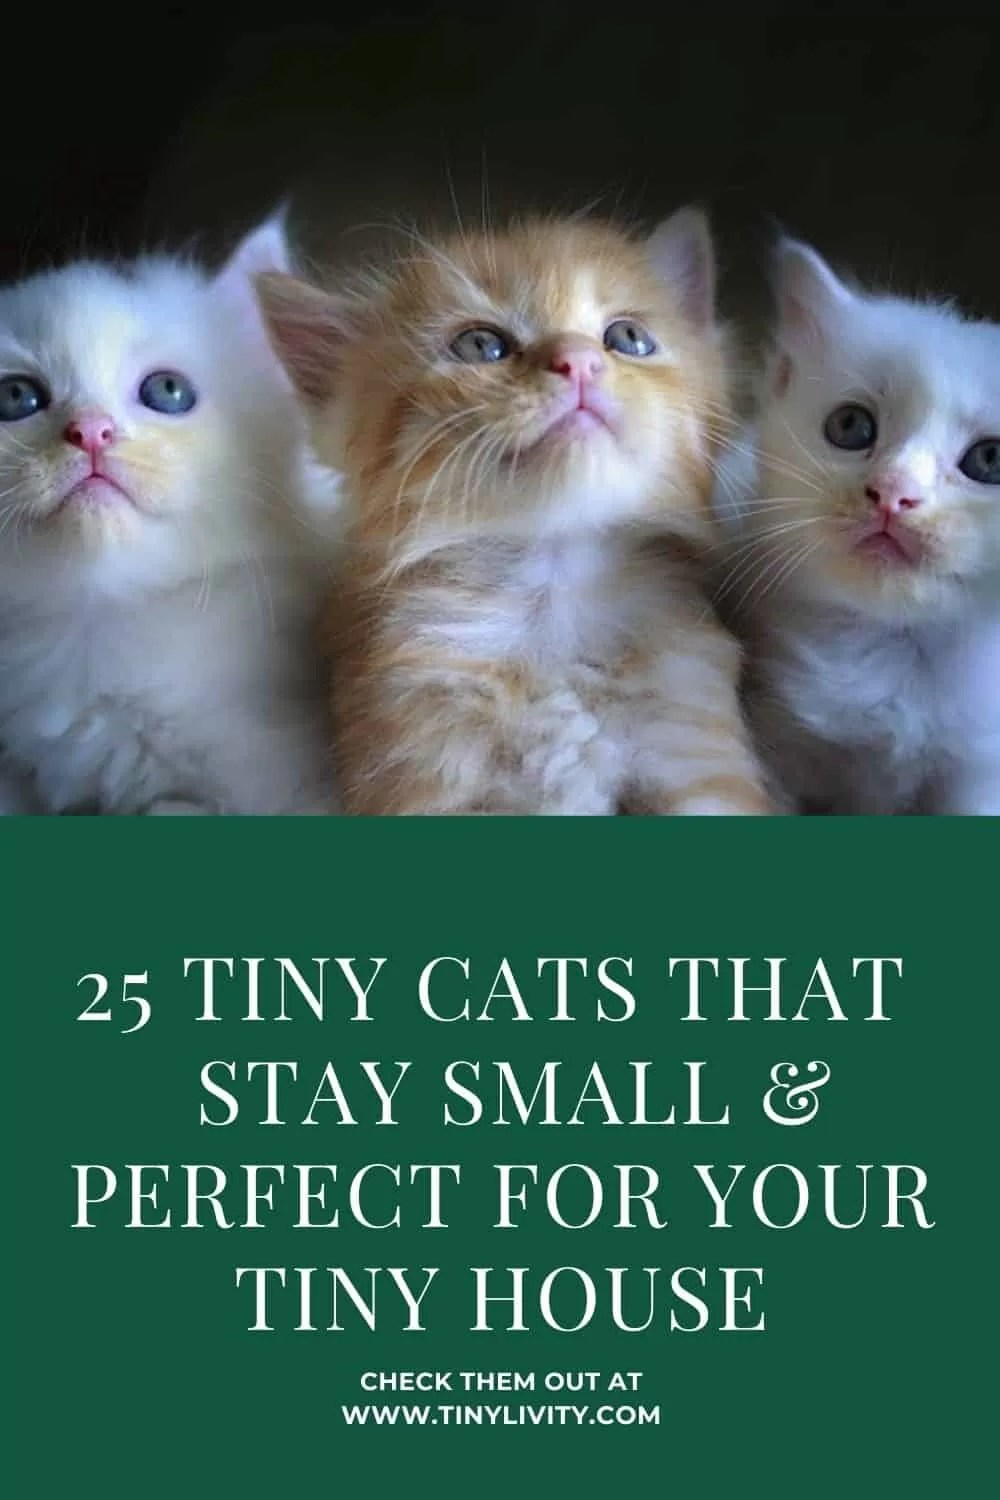 25 Tiny Cats That Stay Small & Perfect for Tiny House